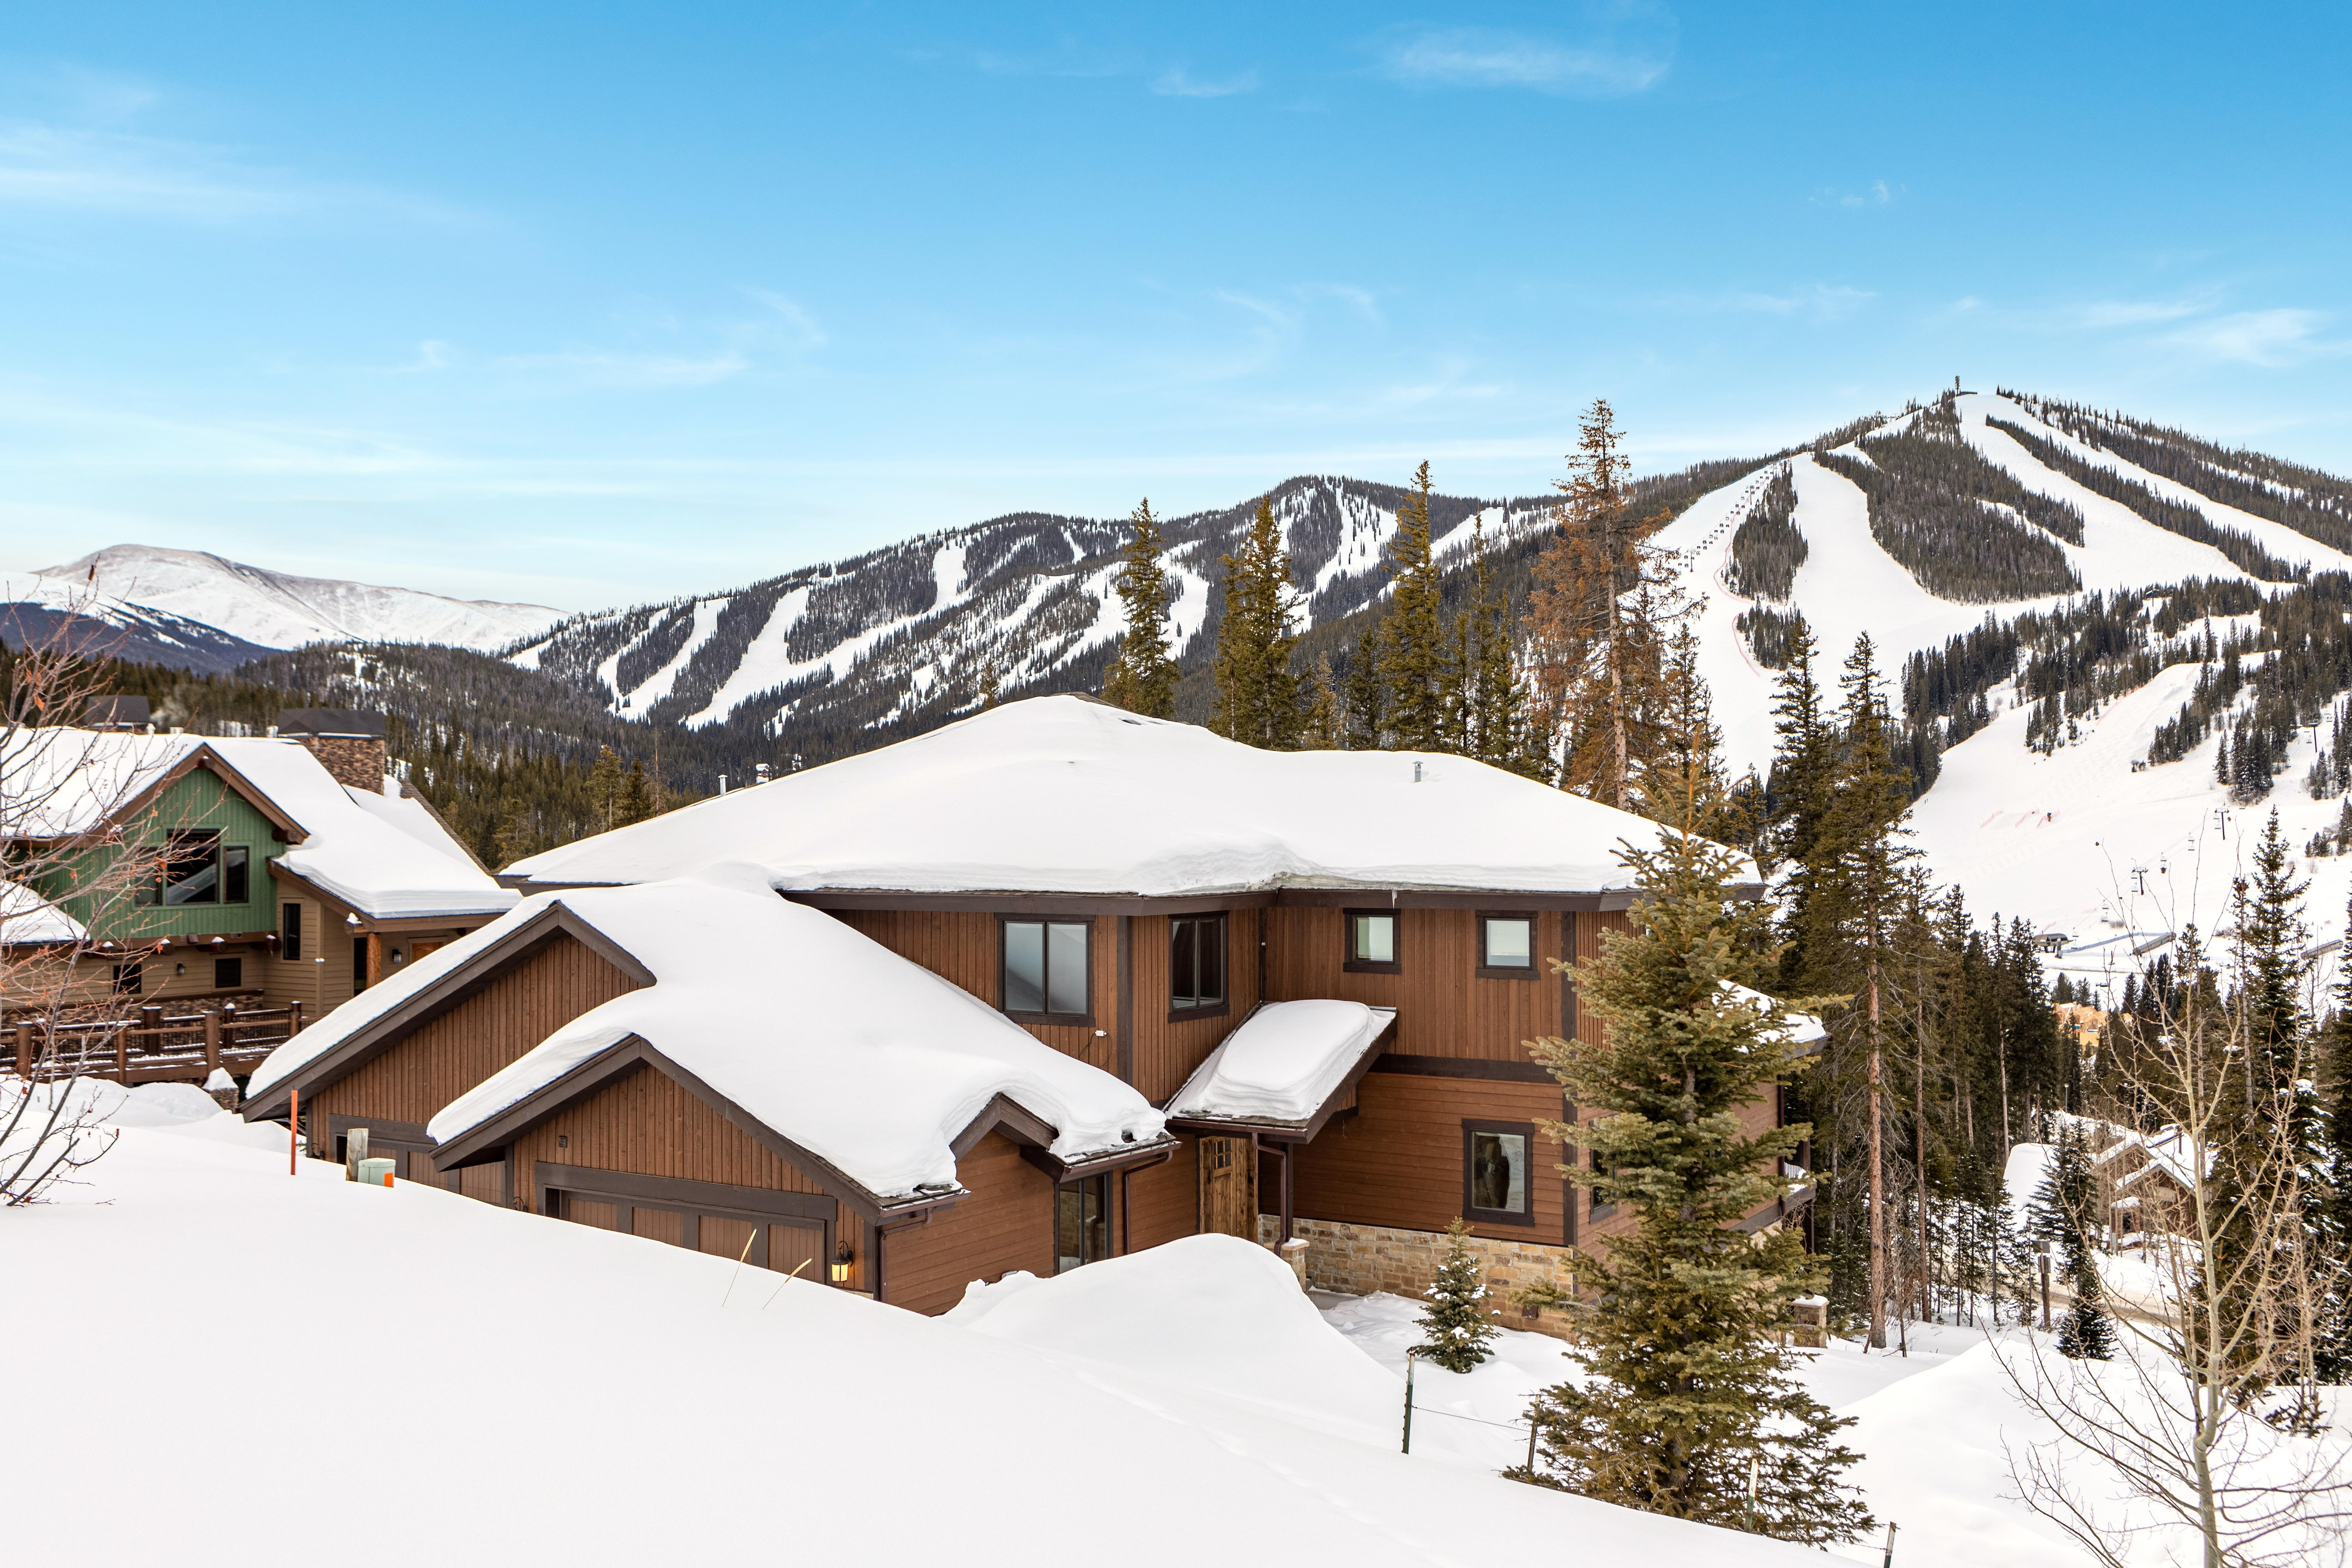 This home is situated less than 1 mile from Winter Park Resort, offering winter sports and a wide variety of summer activities and concerts.